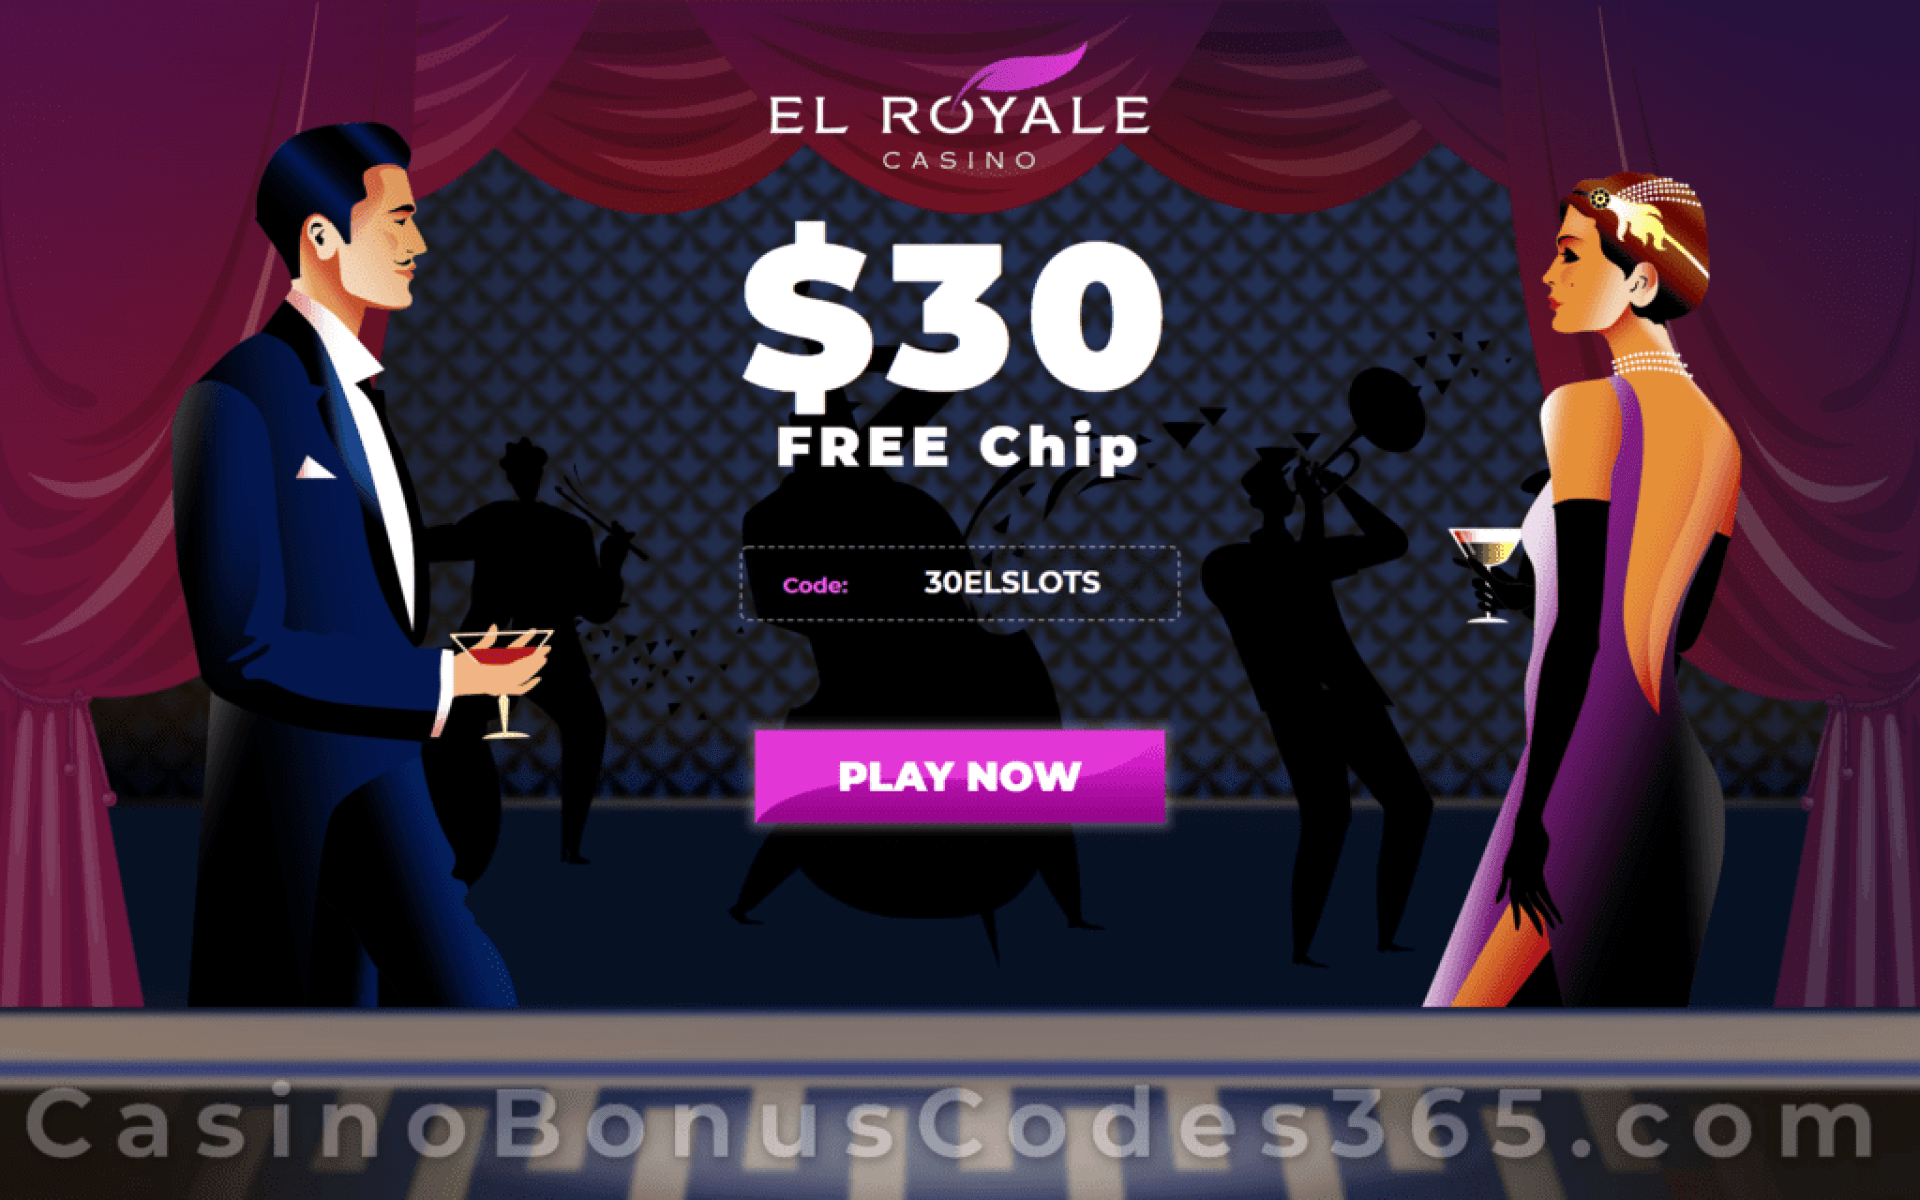 El Royale Casino $30 FREE Chip Welcome Deal